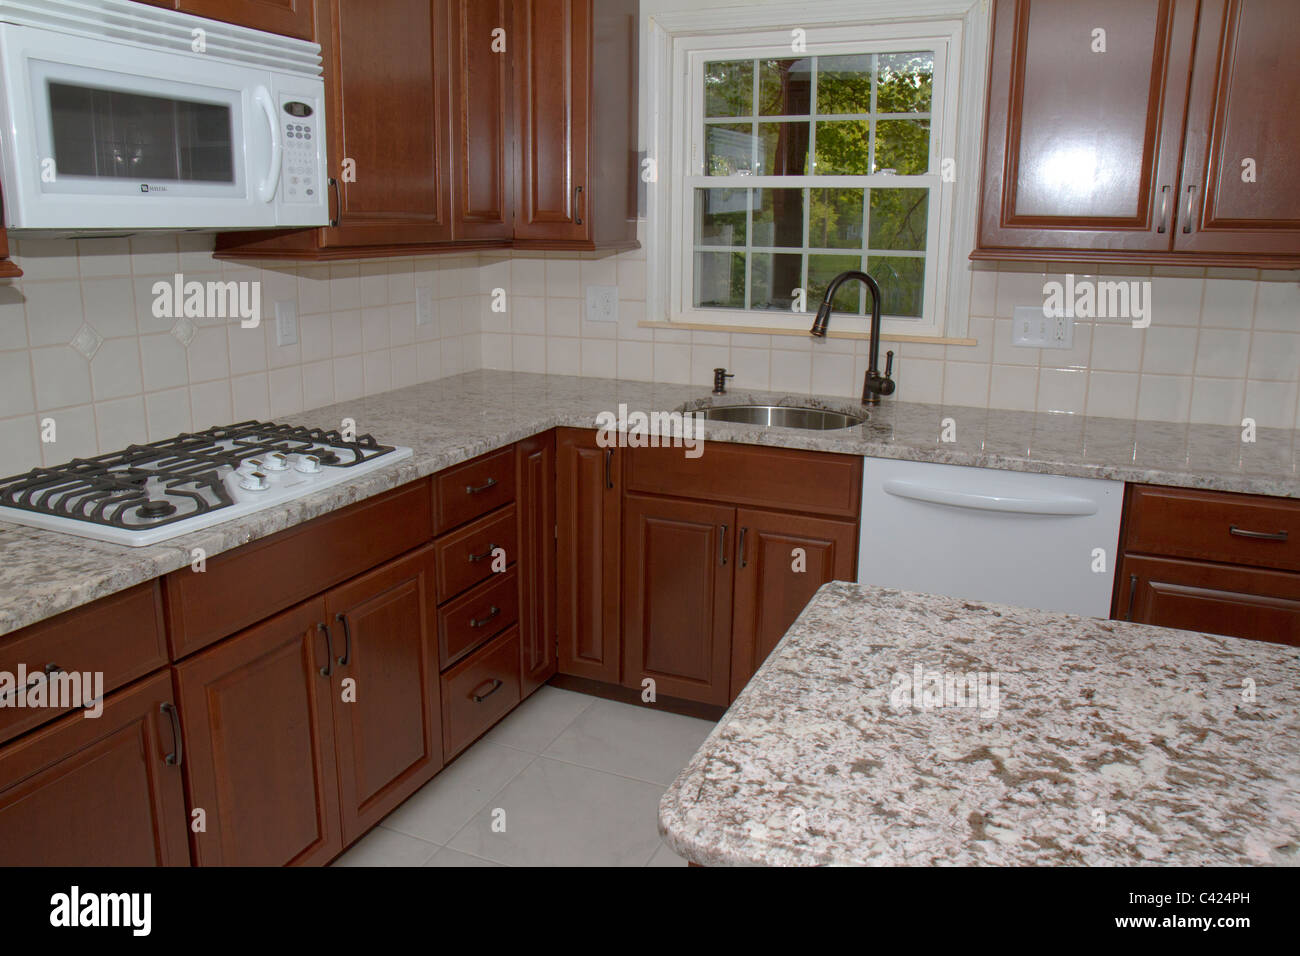 New cherry cabinets, granite counter tops, and ceramic tile floor ...